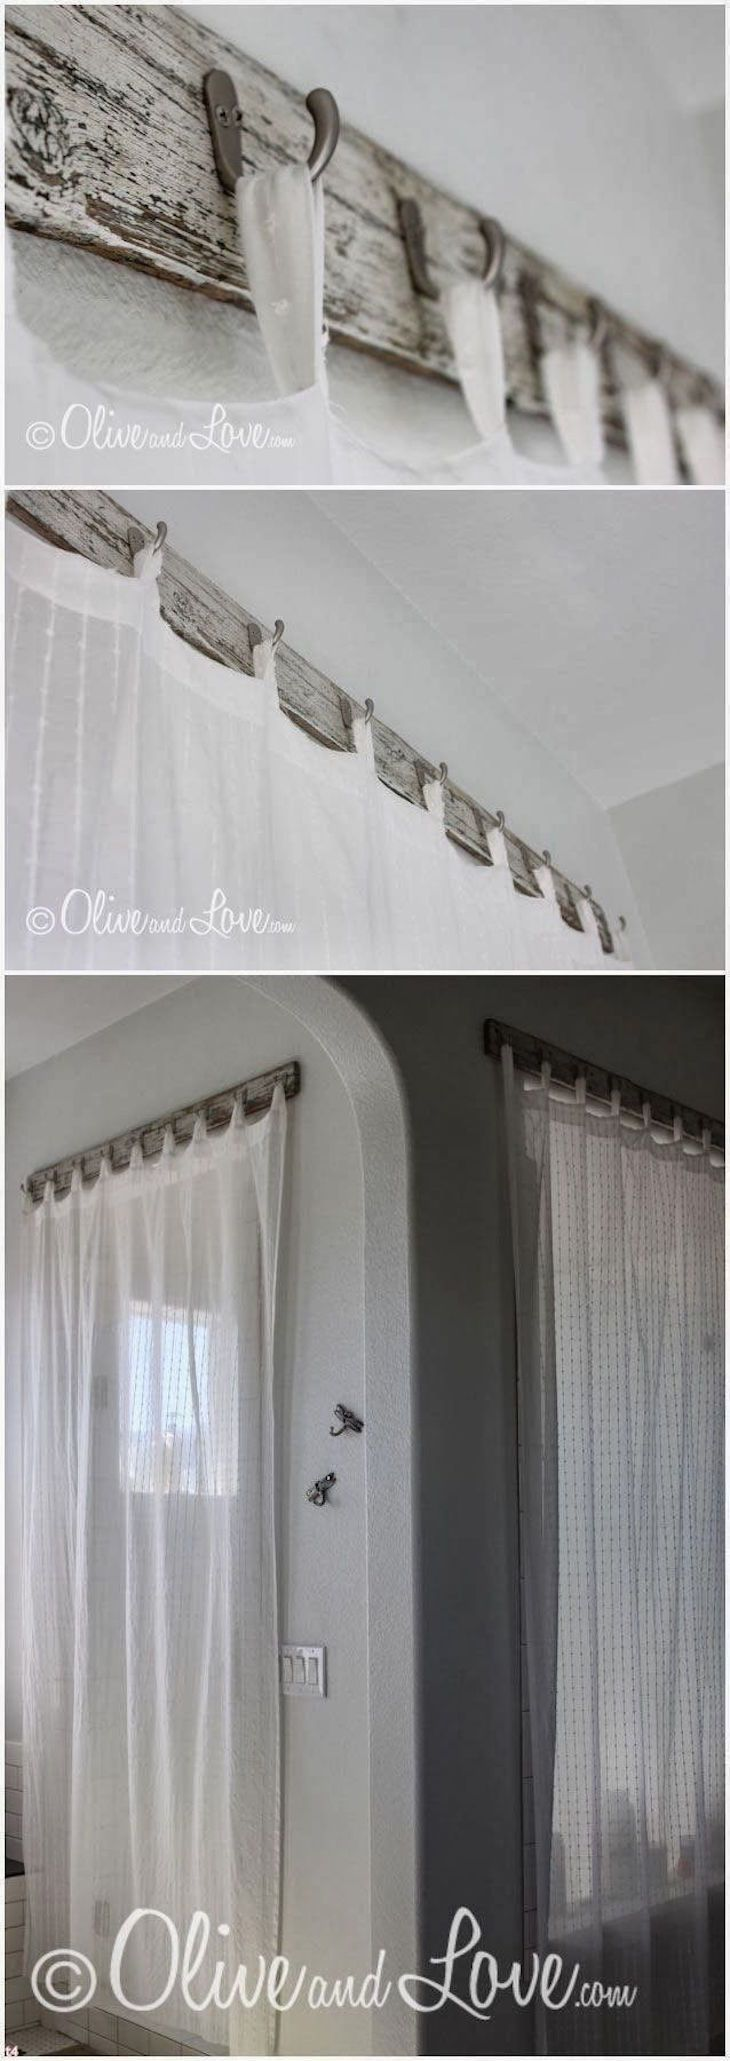 Not Only Curtains But Also A Stylish Curtain Rods Can Brighten Up Your Space There Ideas For CurtainsCloset